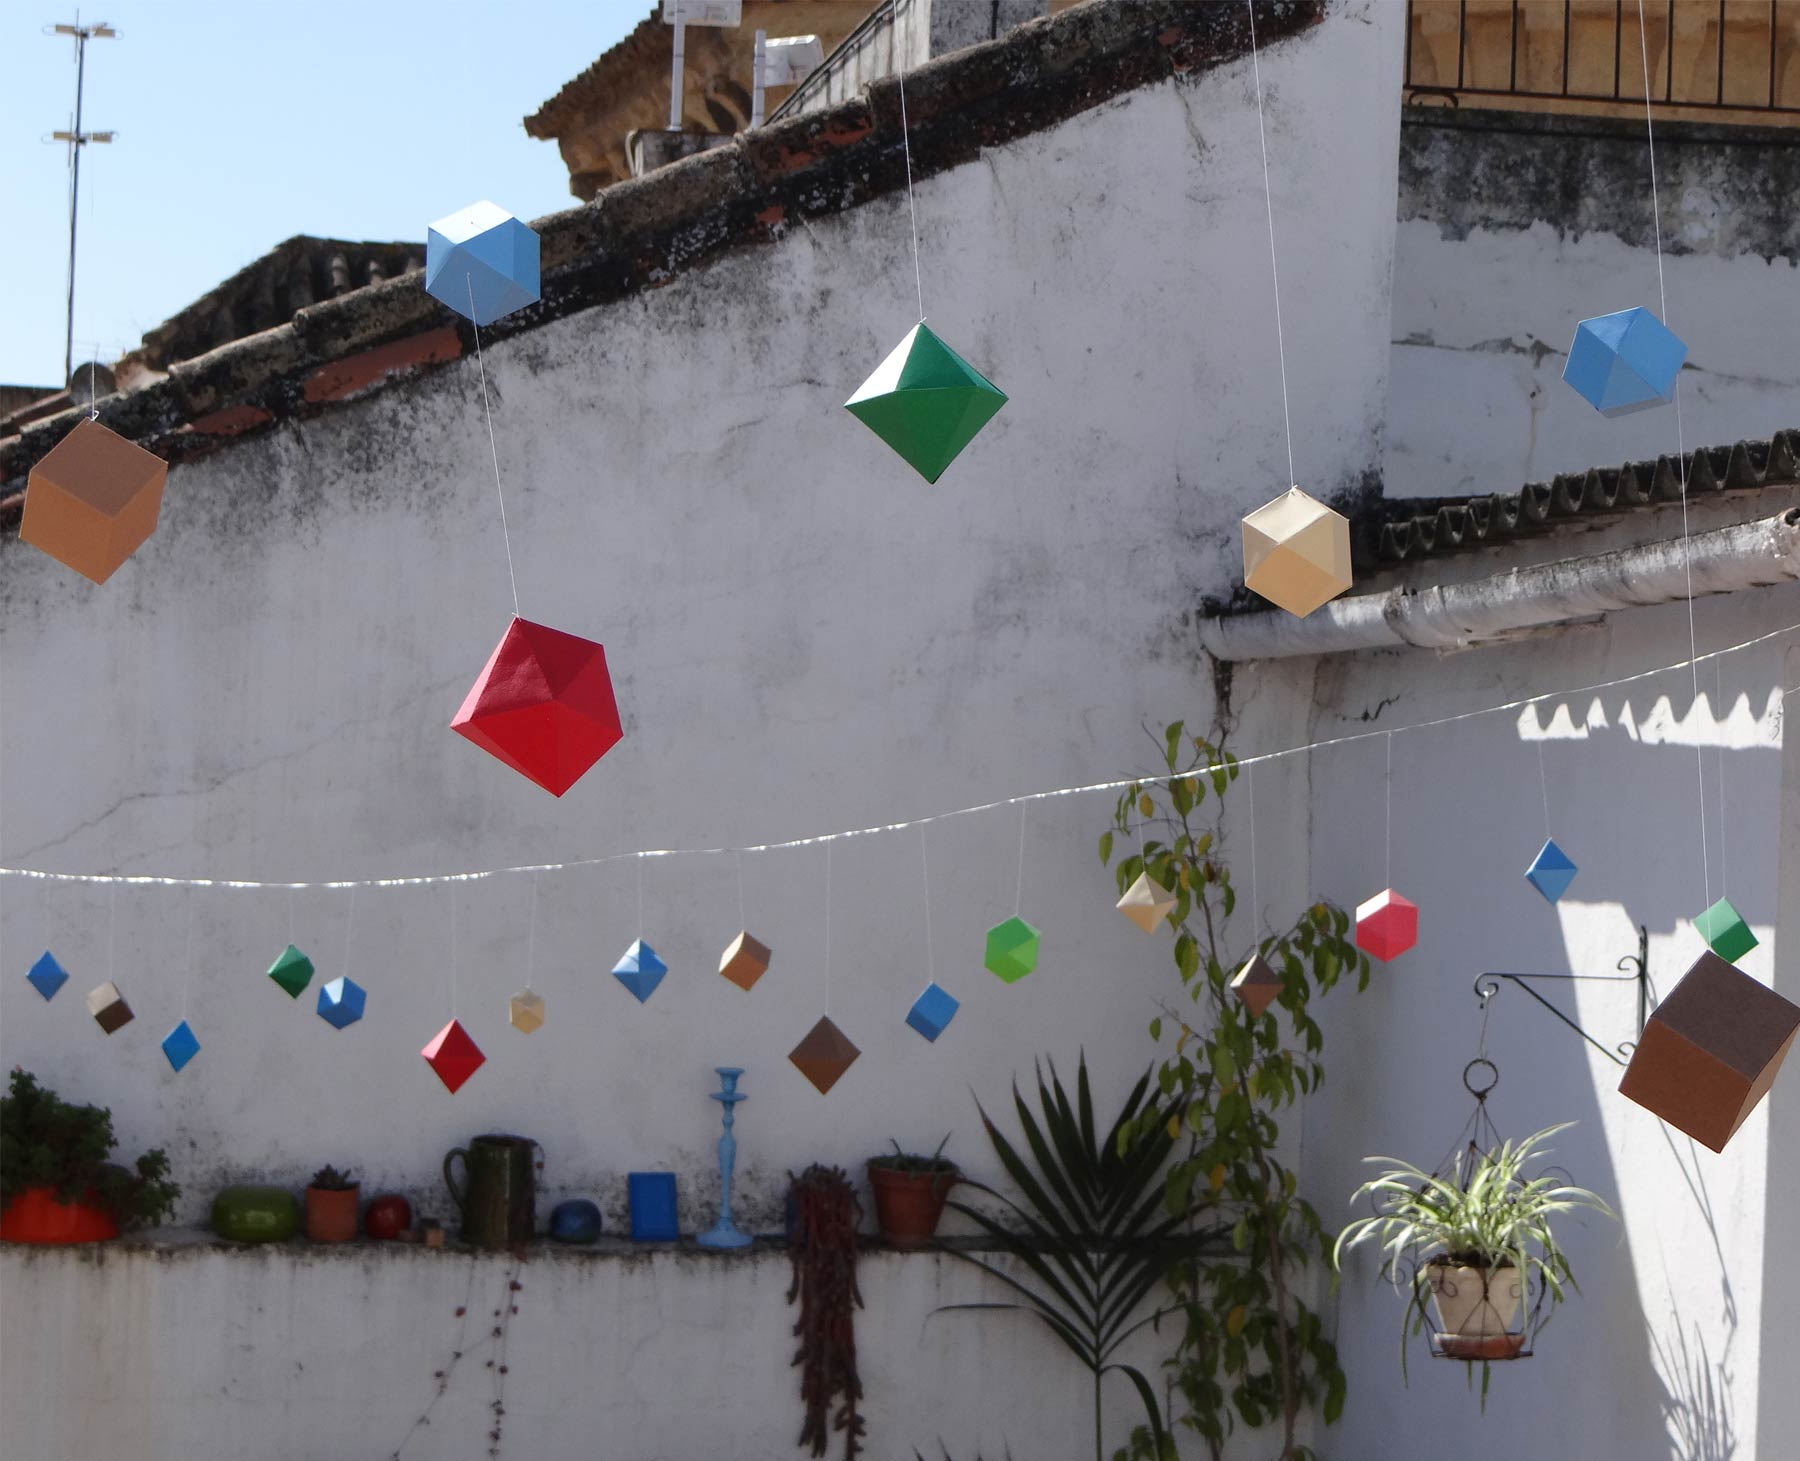 Photo of a terrace decorated with coloured small three-dimensional geometrical paper items